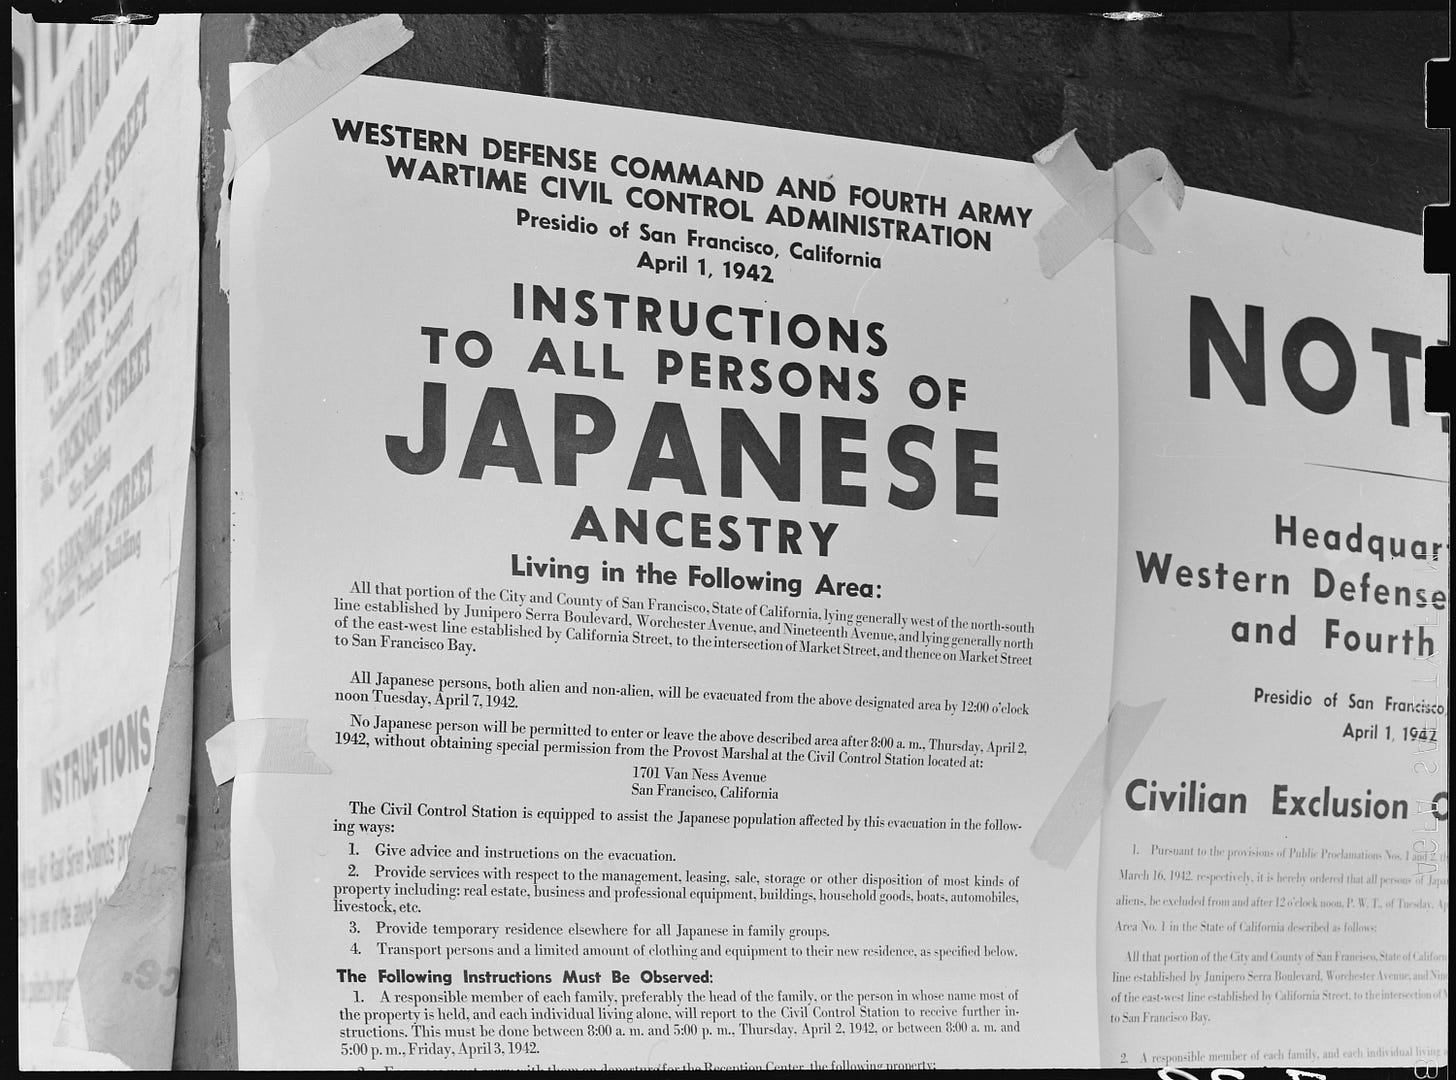 Reliving Injustice 75 Years Later: Executive Order 9066 Then and Now |  Perspectives on History | AHA